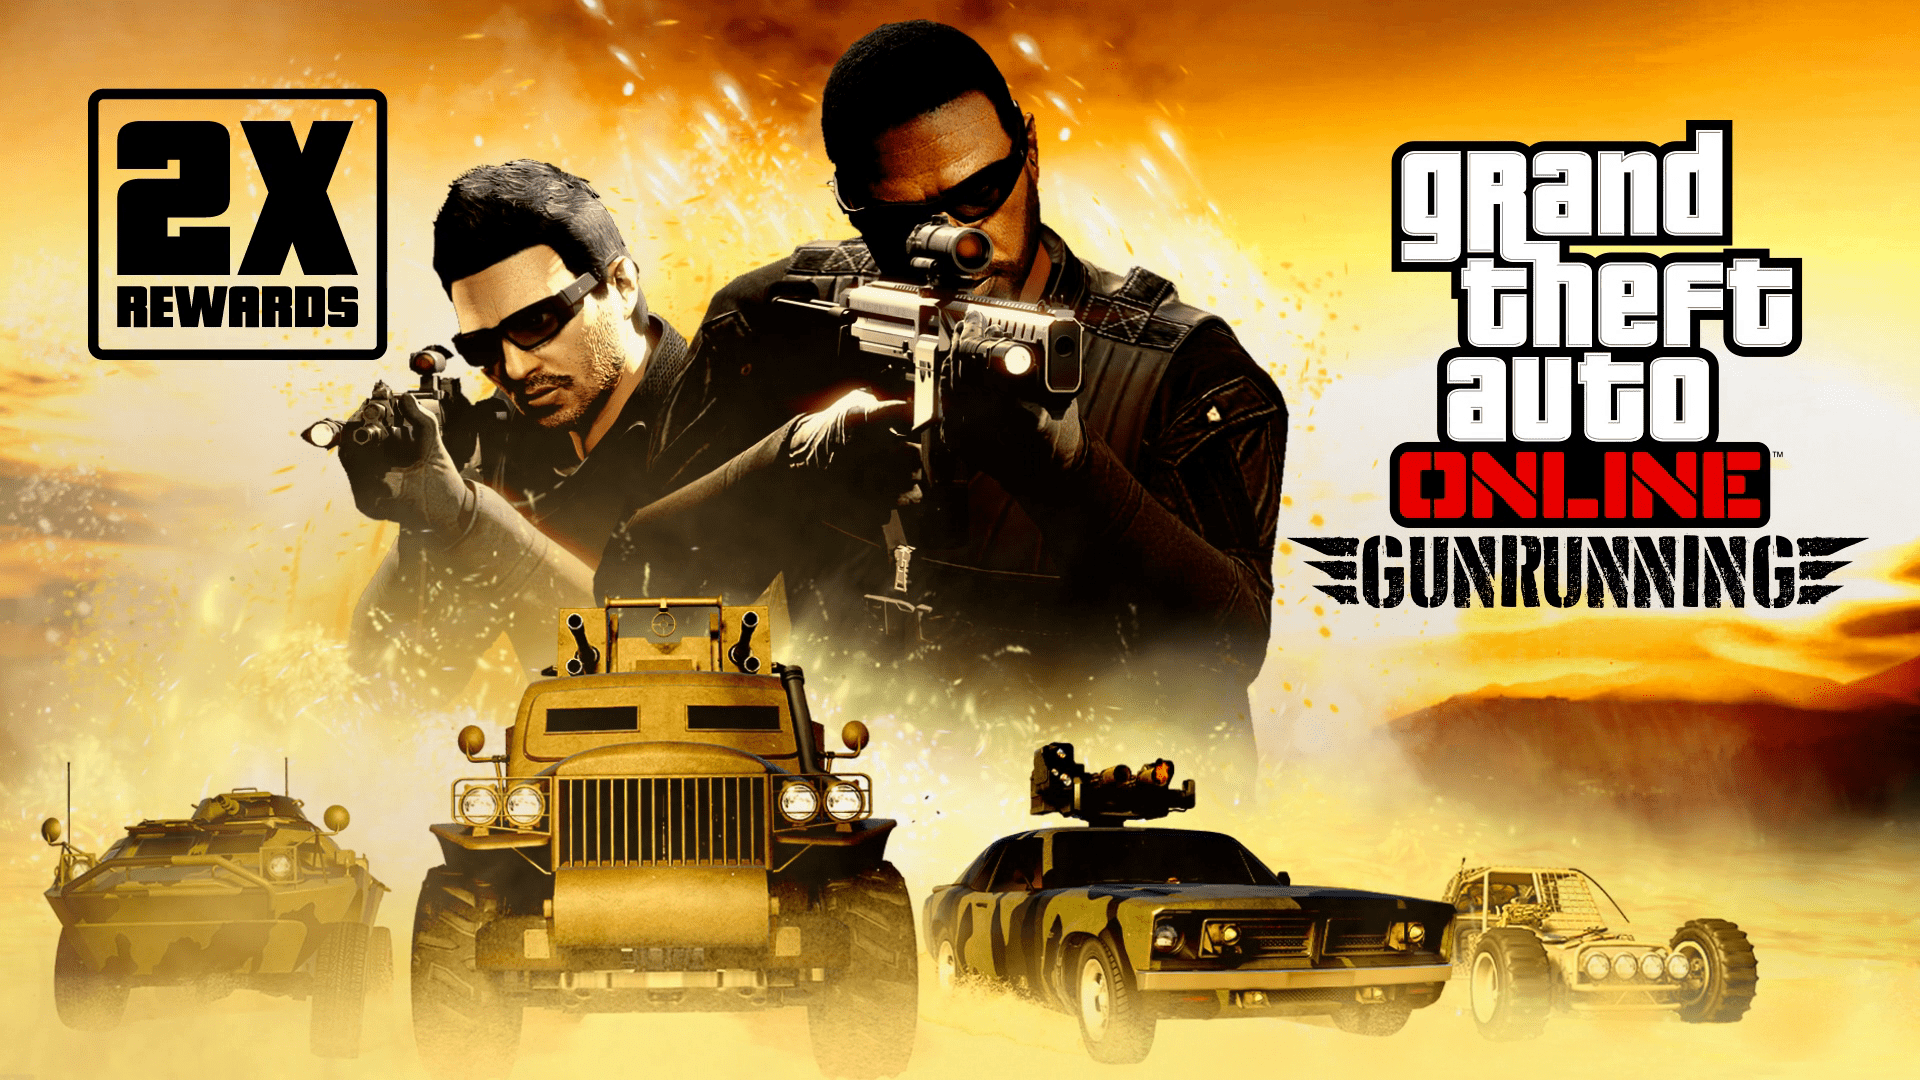 GTA Online: Double Rewards on Gunrunning Sell Missions, Free Weapons, Discounts & more